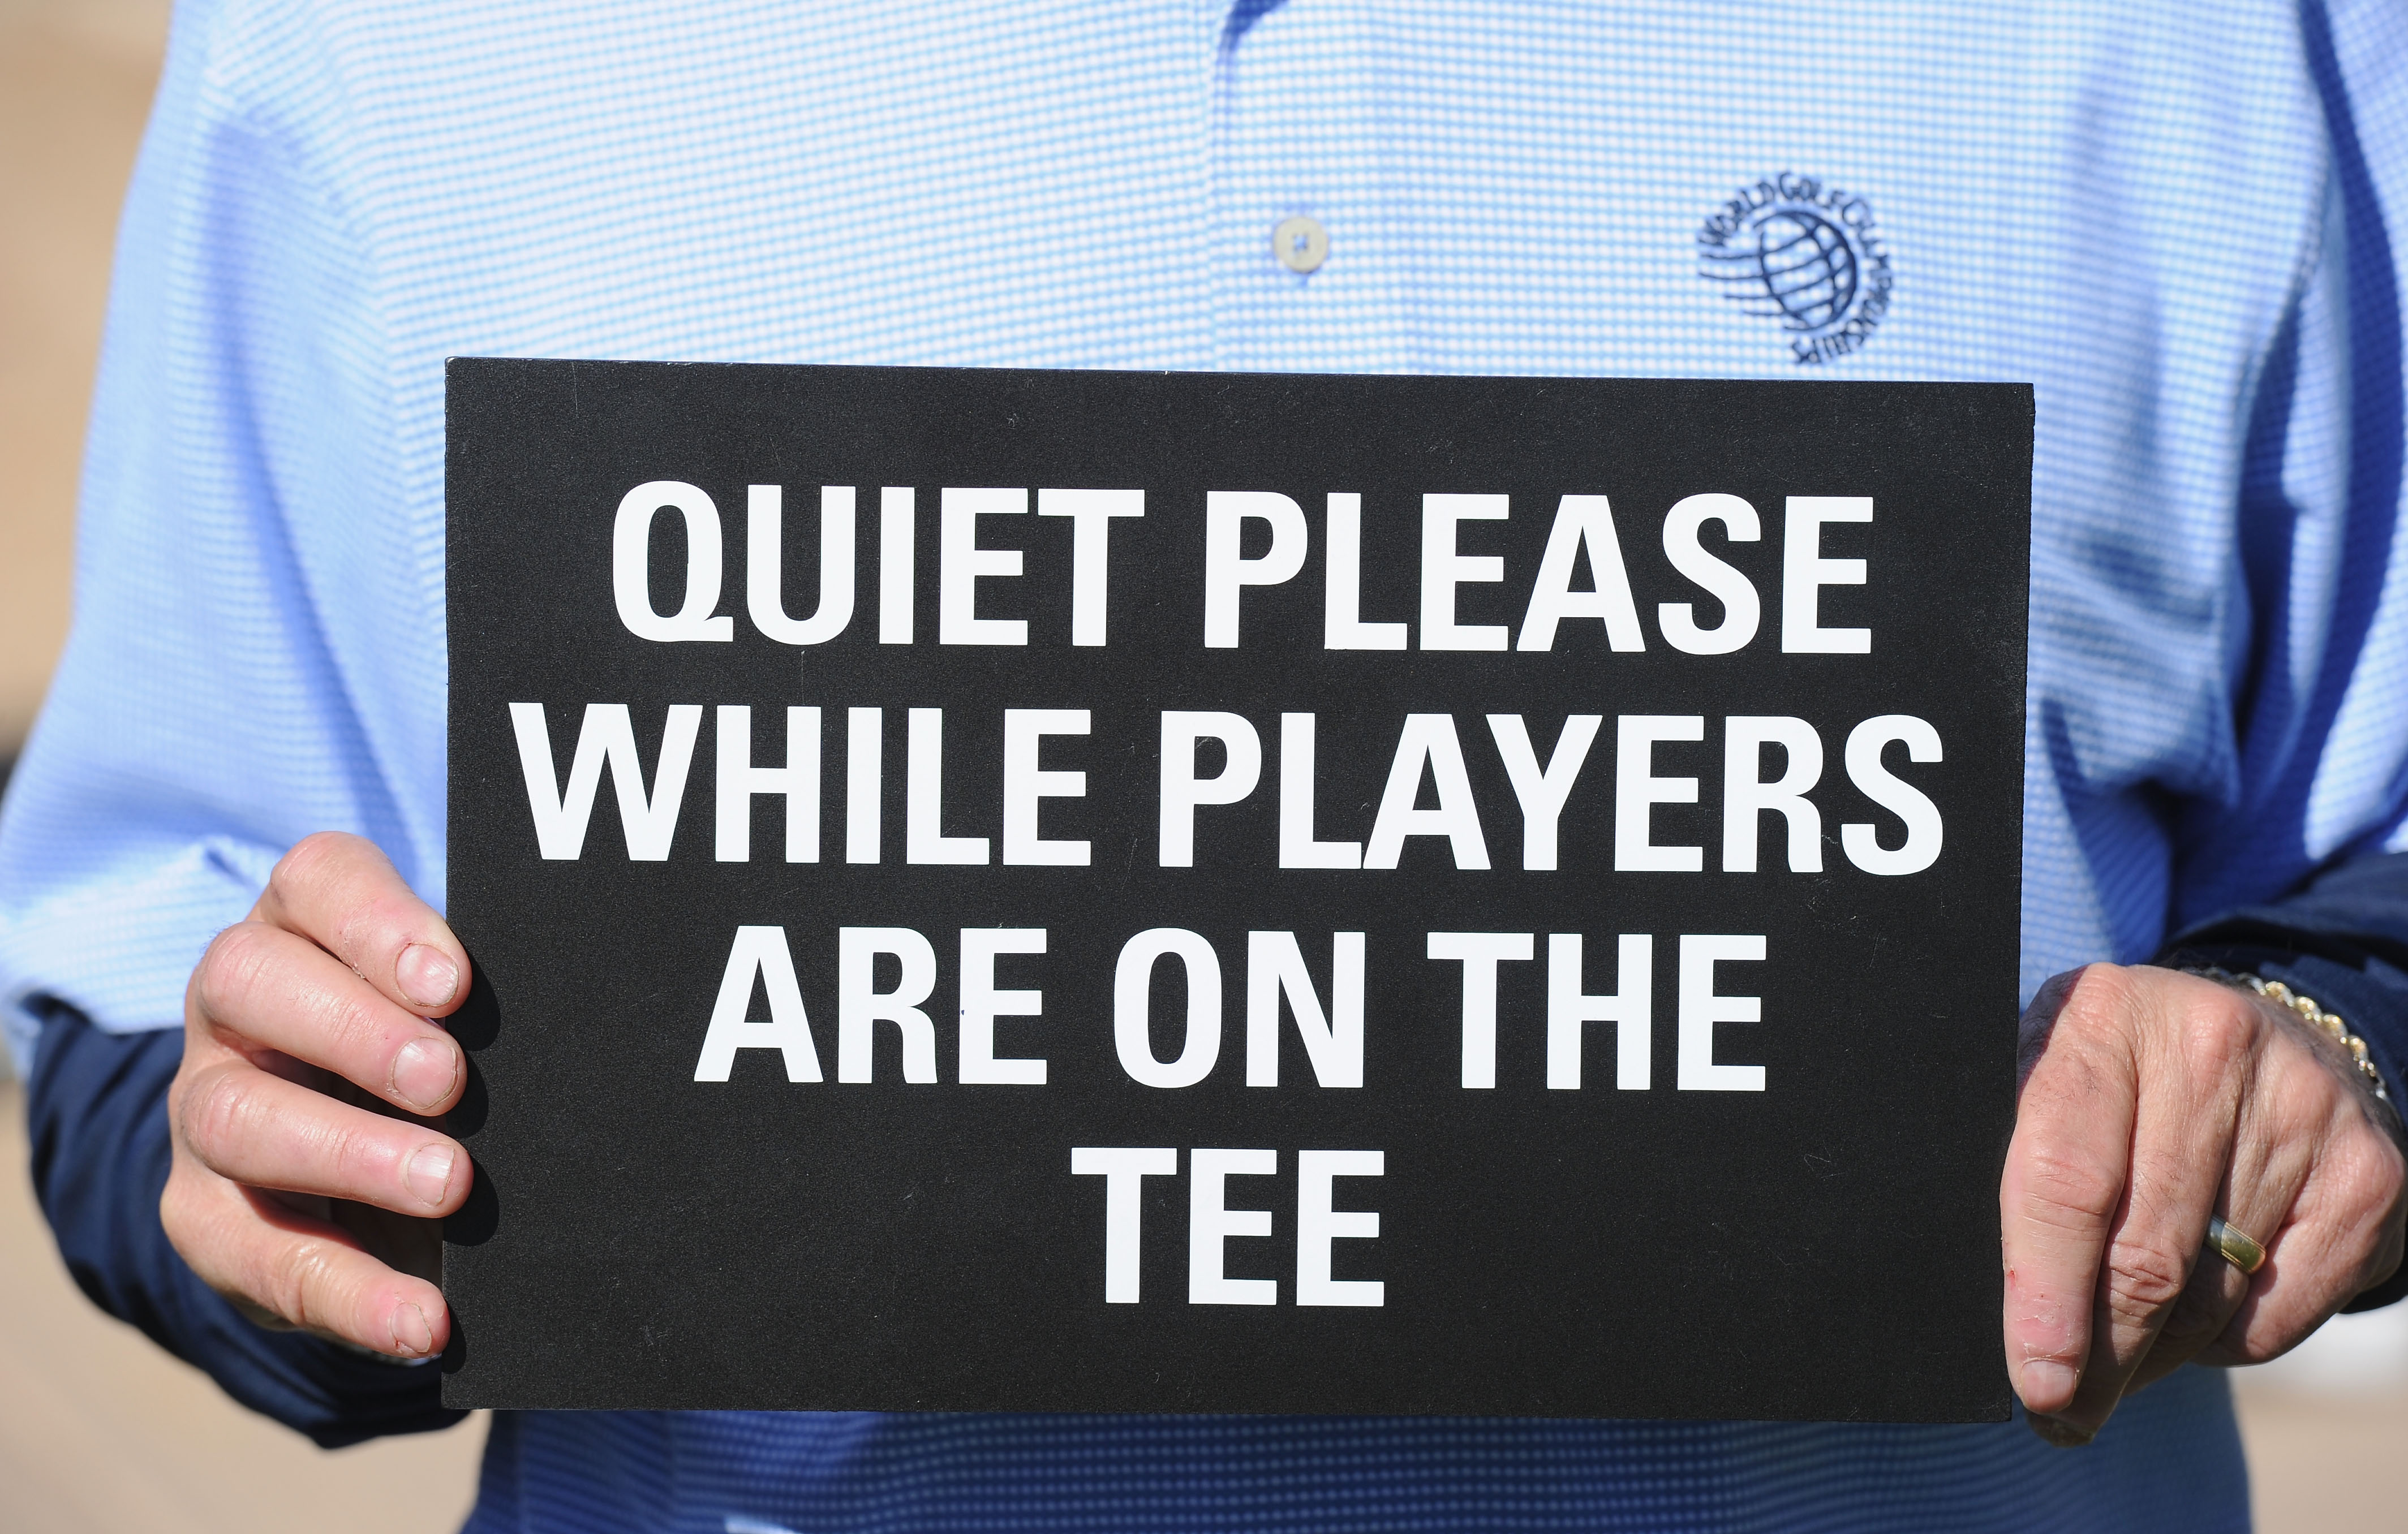 MARANA, AZ - FEBRUARY 24:  A marshall holds a quiet please sign during the second round of the Accenture Match Play Championship at the Ritz-Carlton Golf Club on February 24, 2011 in Marana, Arizona.  (Photo by Stuart Franklin/Getty Images)